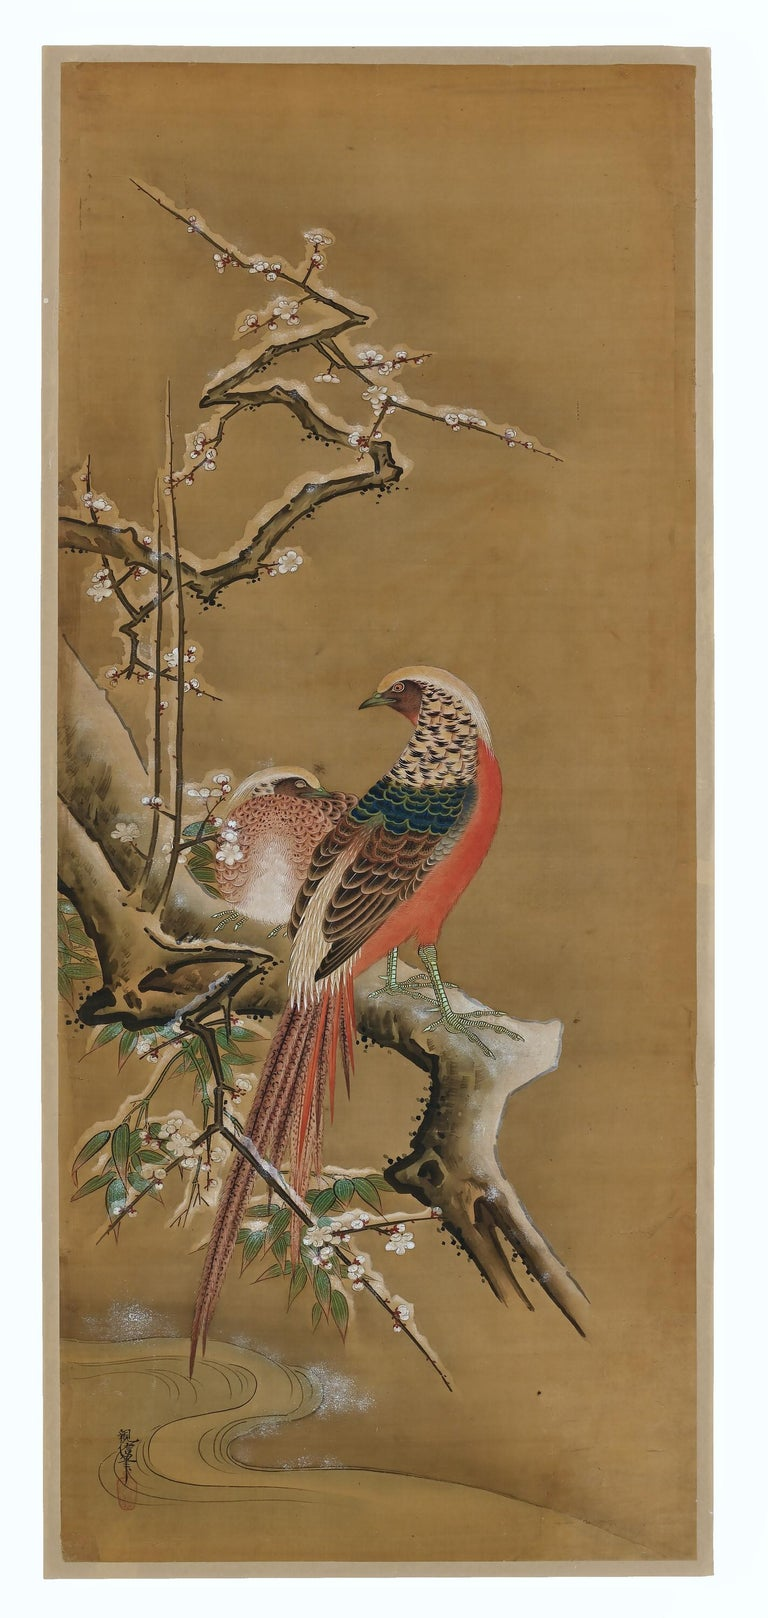 Birds & Flowers of the Seasons  Pheasants & Plum in Snow  Ink, pigment and gofun on silk  Kano Chikanobu 1819-1888  Signature: Chikanobu  Seal: Shateki  Offered here is an unframed 'kacho-e' painting by the 19th century Japanese